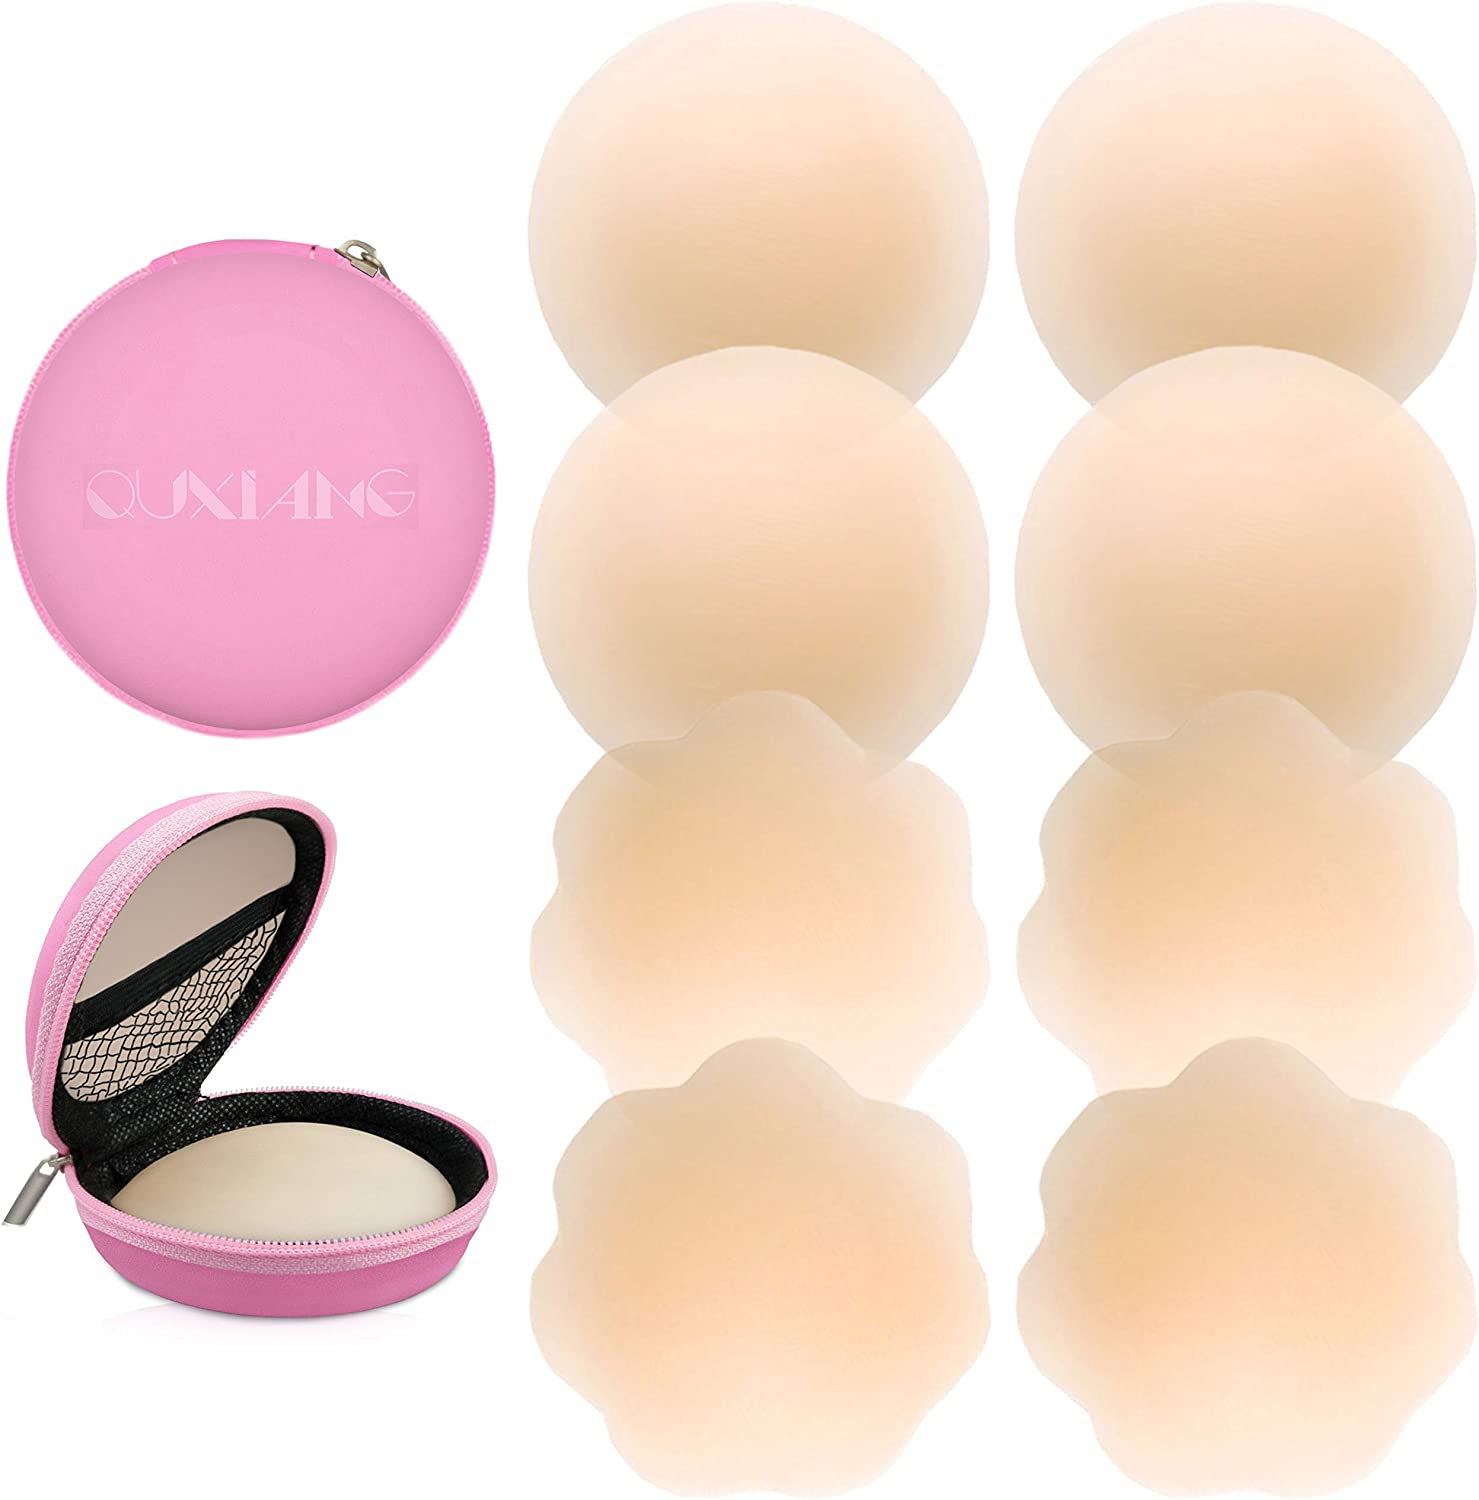 Nipple Covers Women Adhesive Nippleless Cover Reusable Silicone Pasties LOT